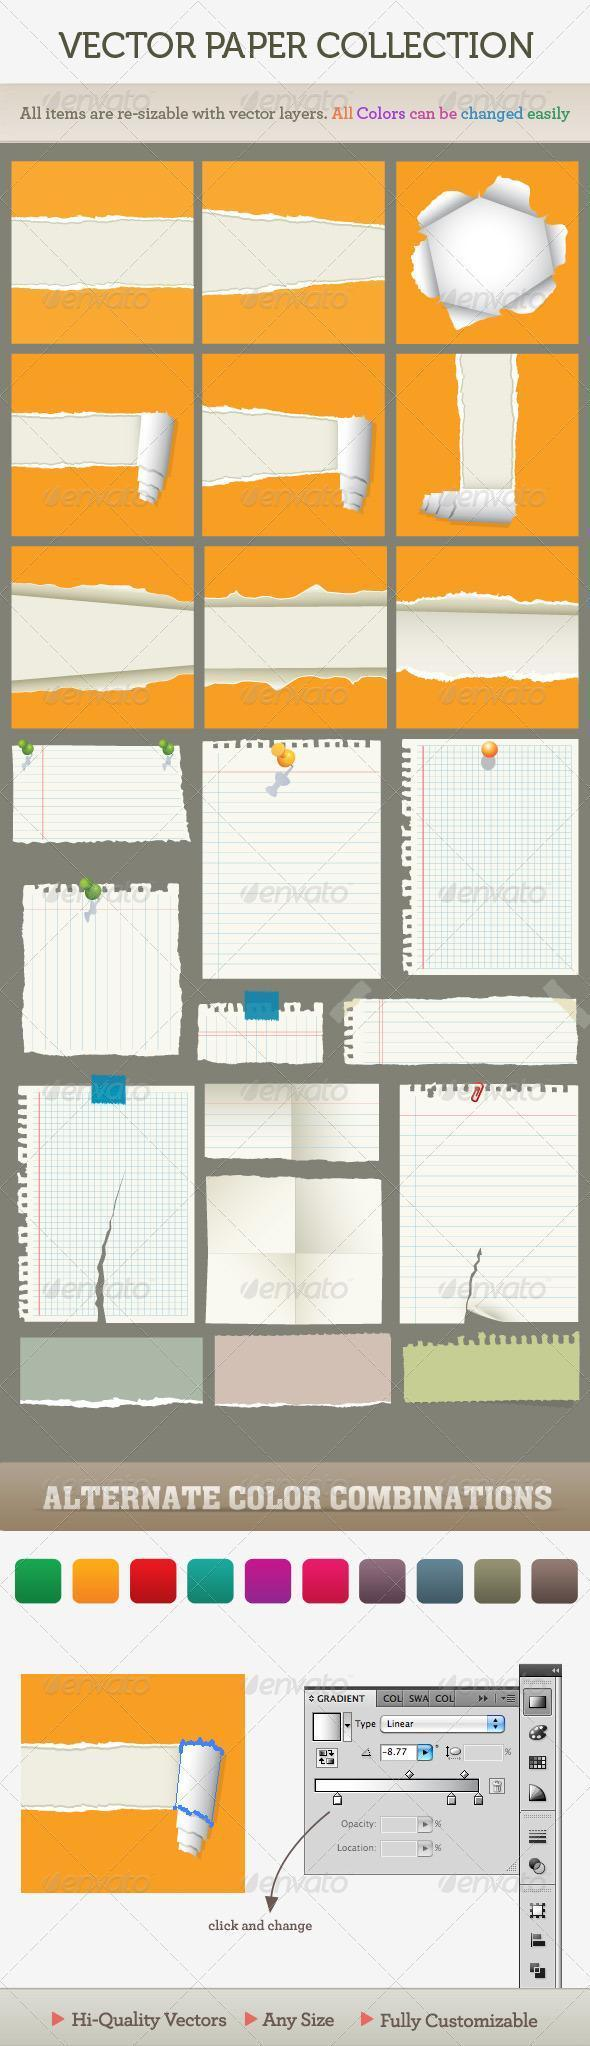 11 Torn Notebook Paper PSD Images